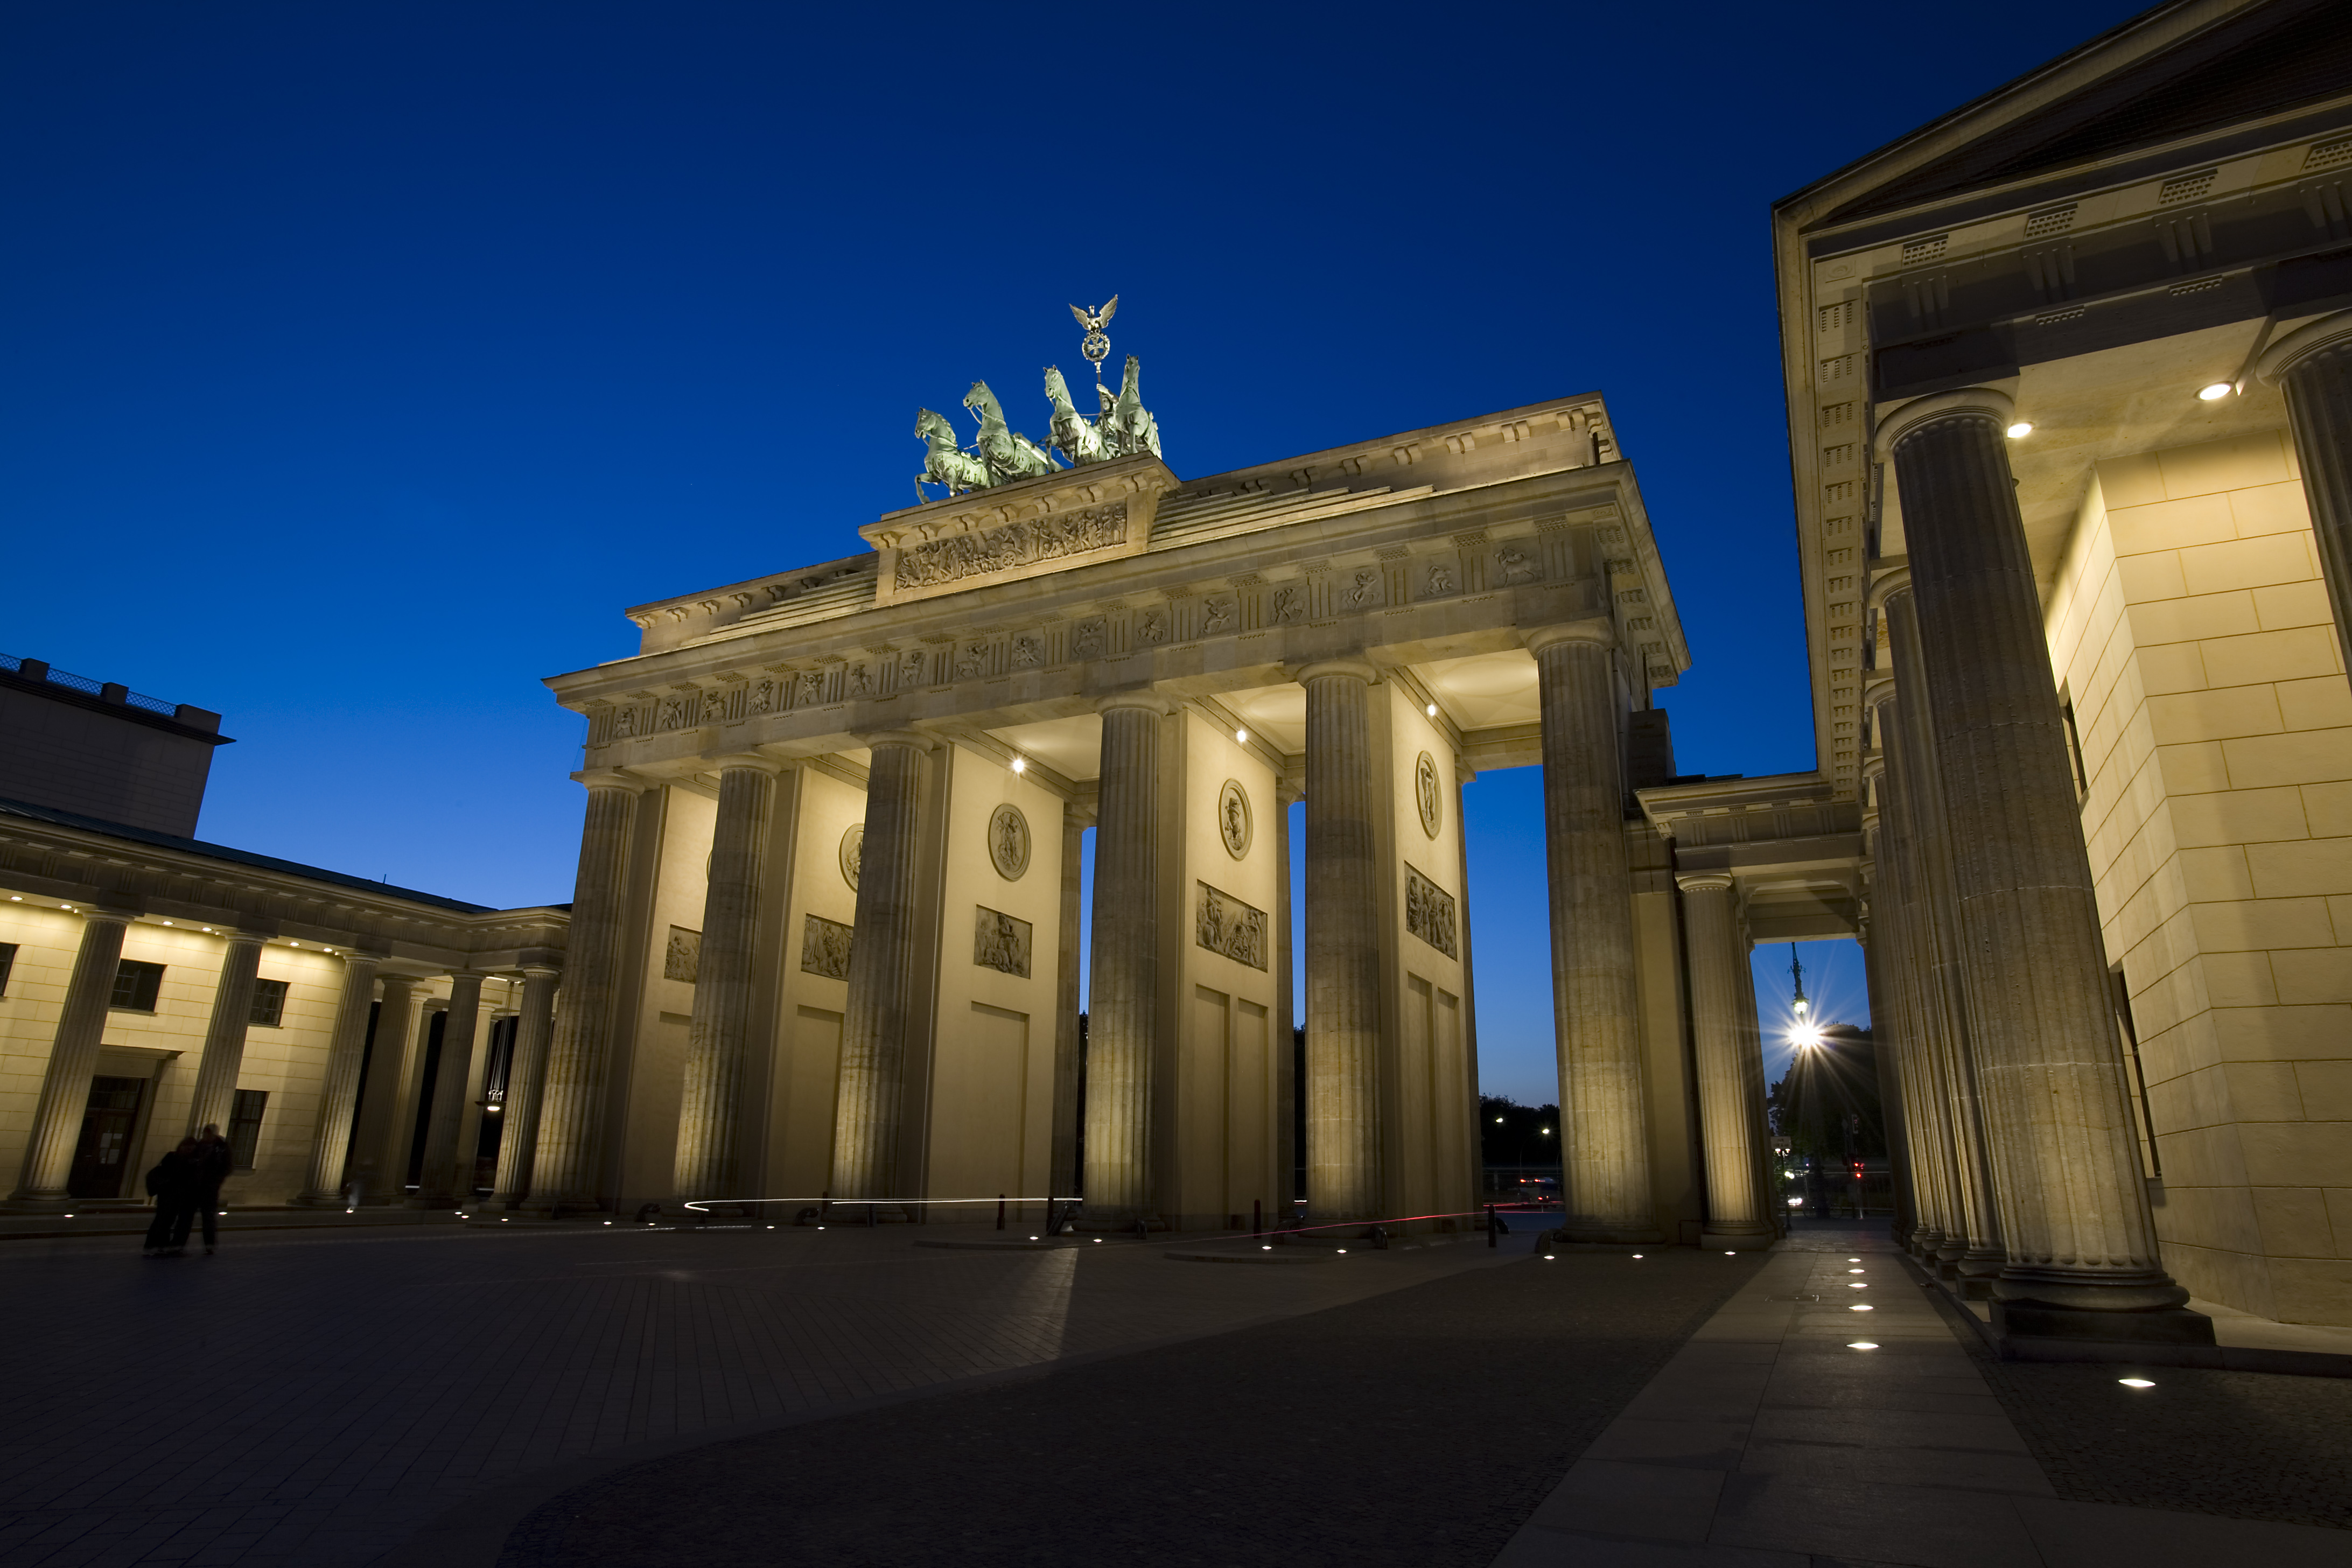 brandenburg gate at night - photo #42